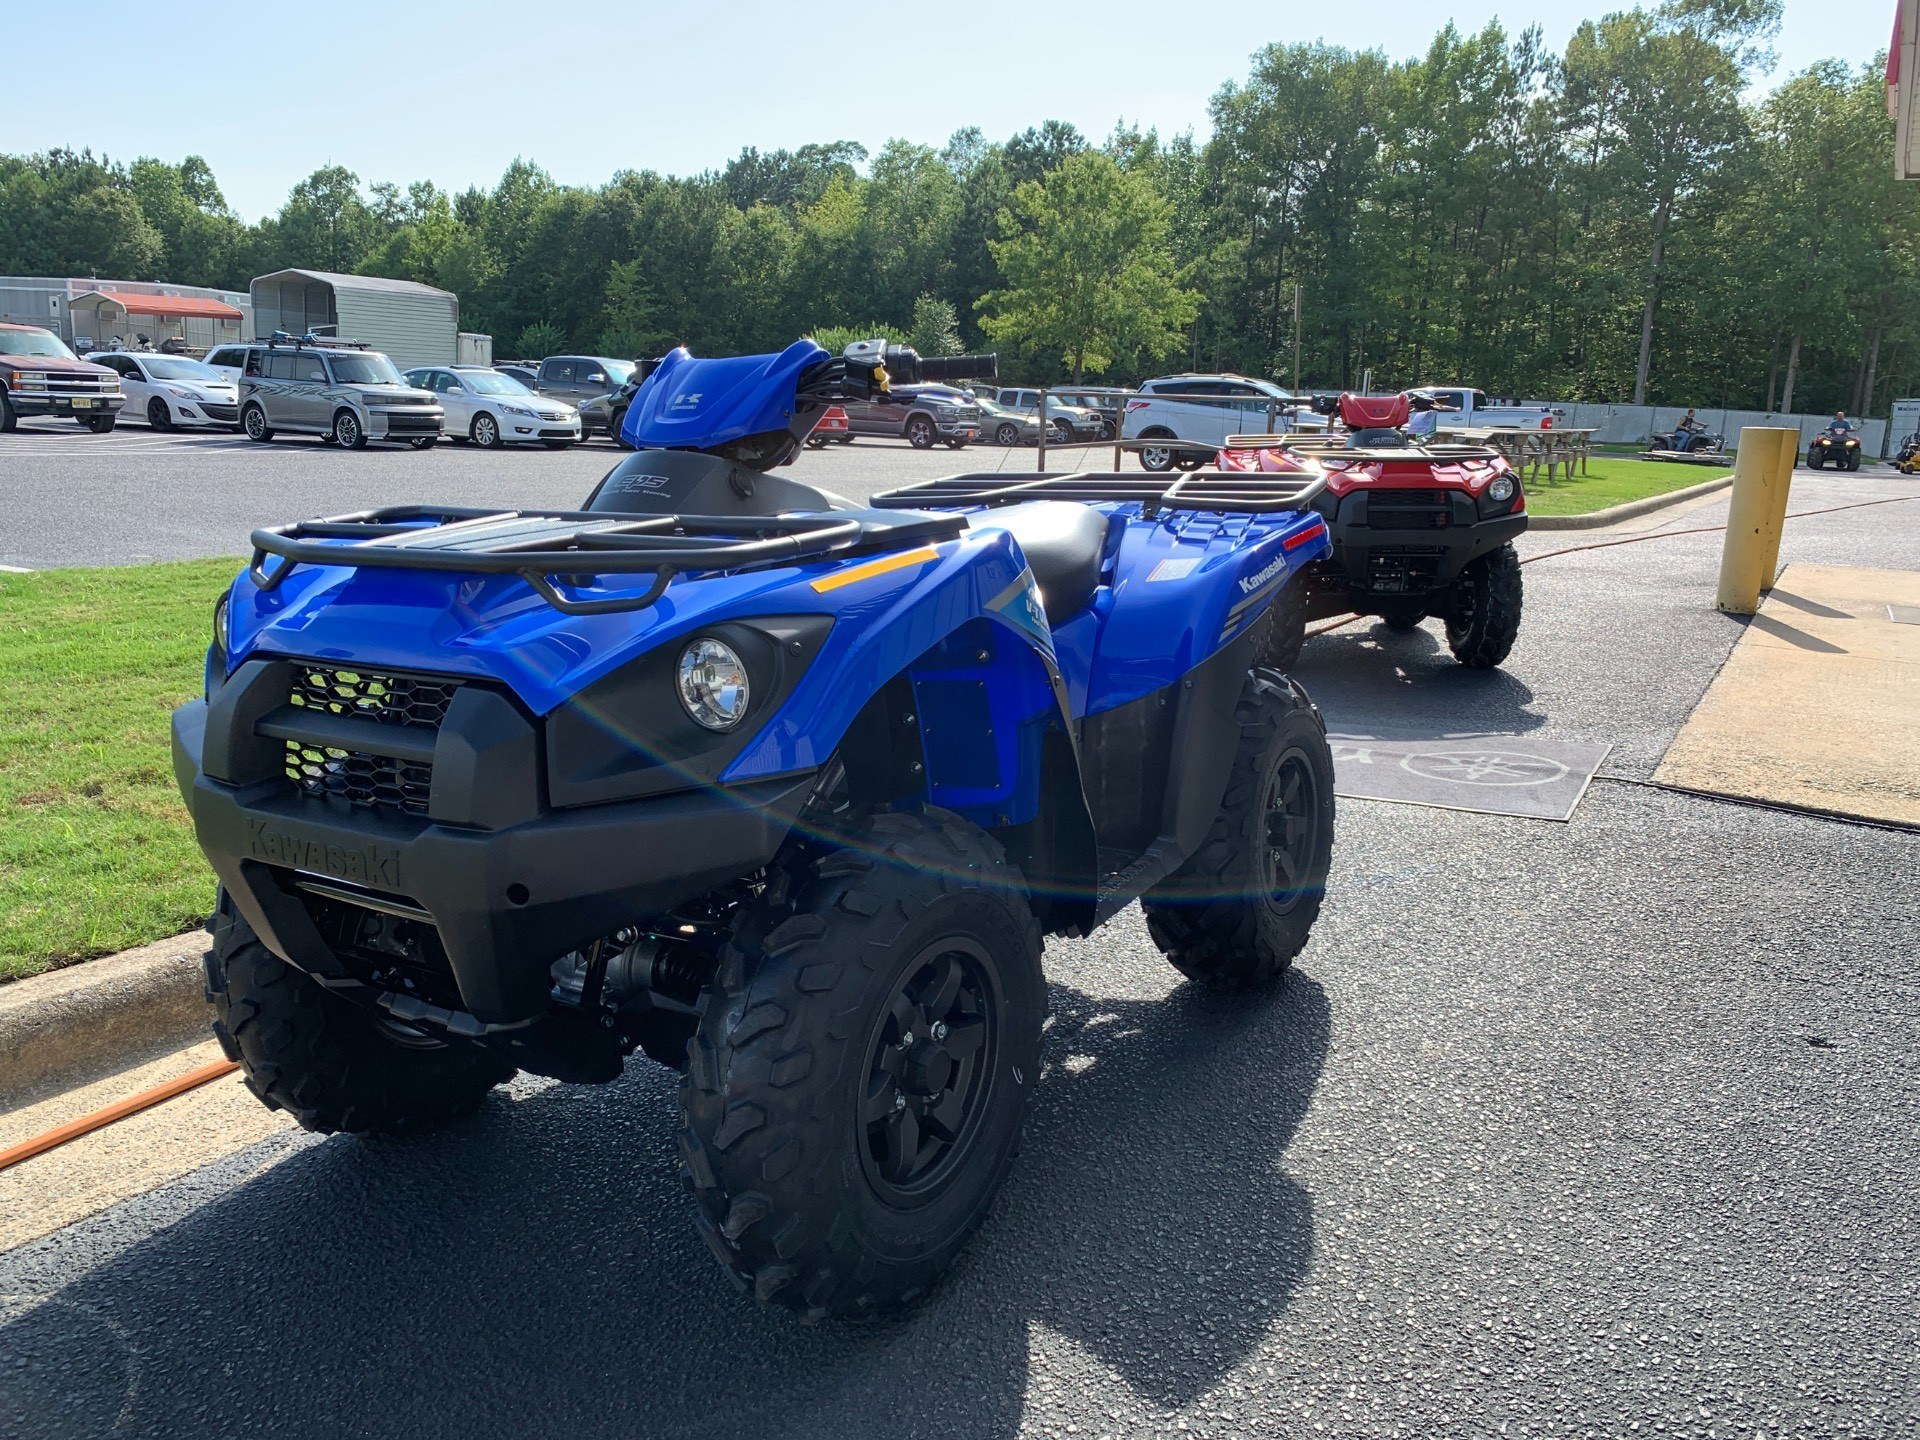 2020 Kawasaki Brute Force 750 4x4i EPS in Greenville, North Carolina - Photo 5